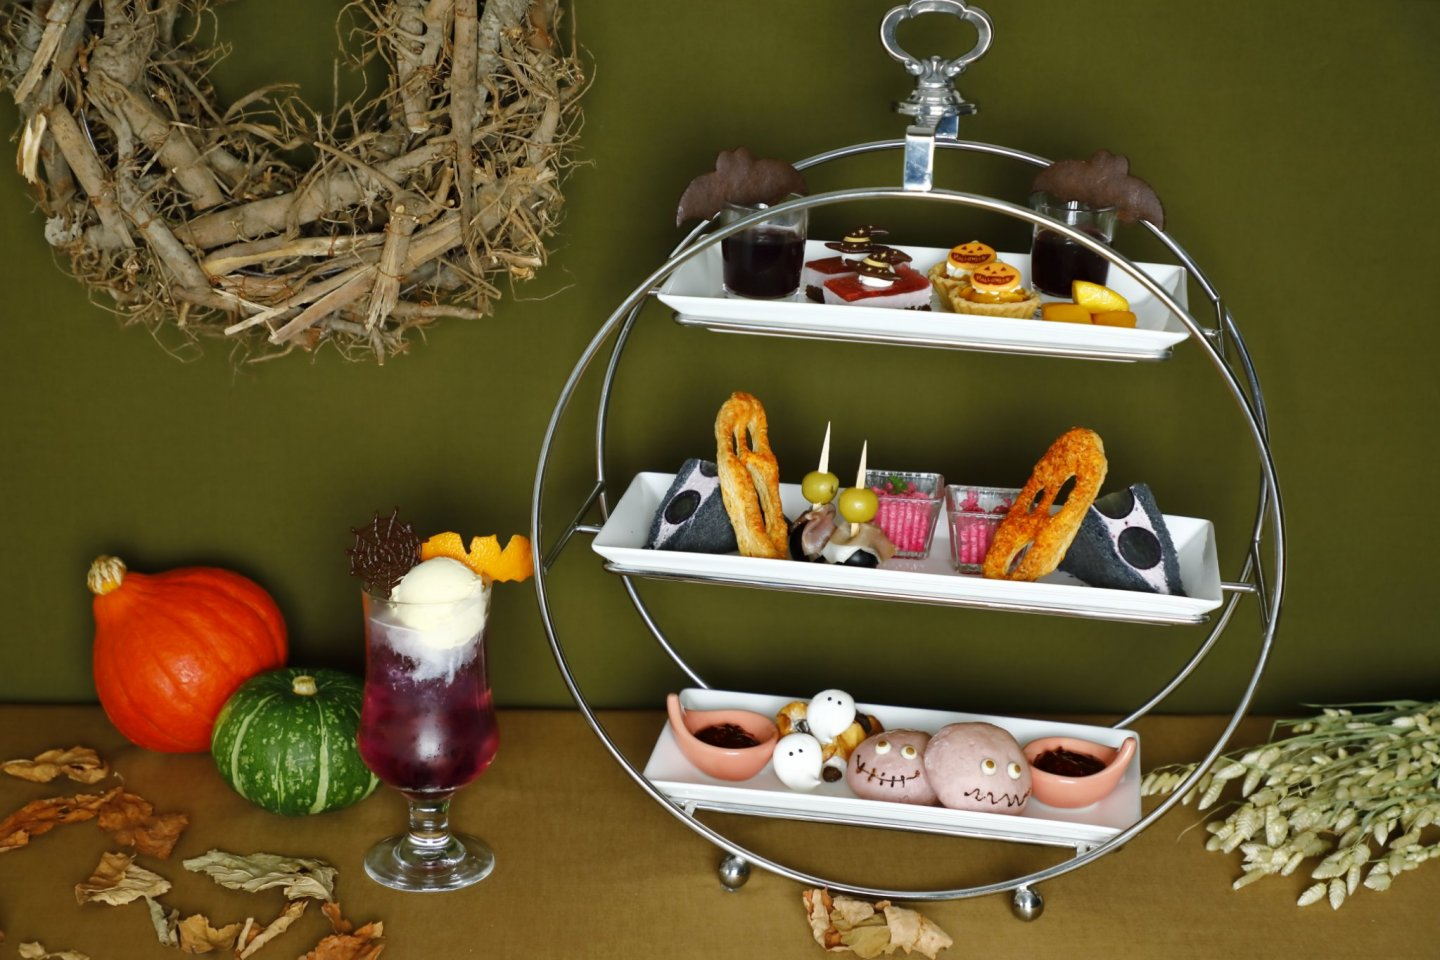 The themed afternoon tea event takes place throughout the month of October